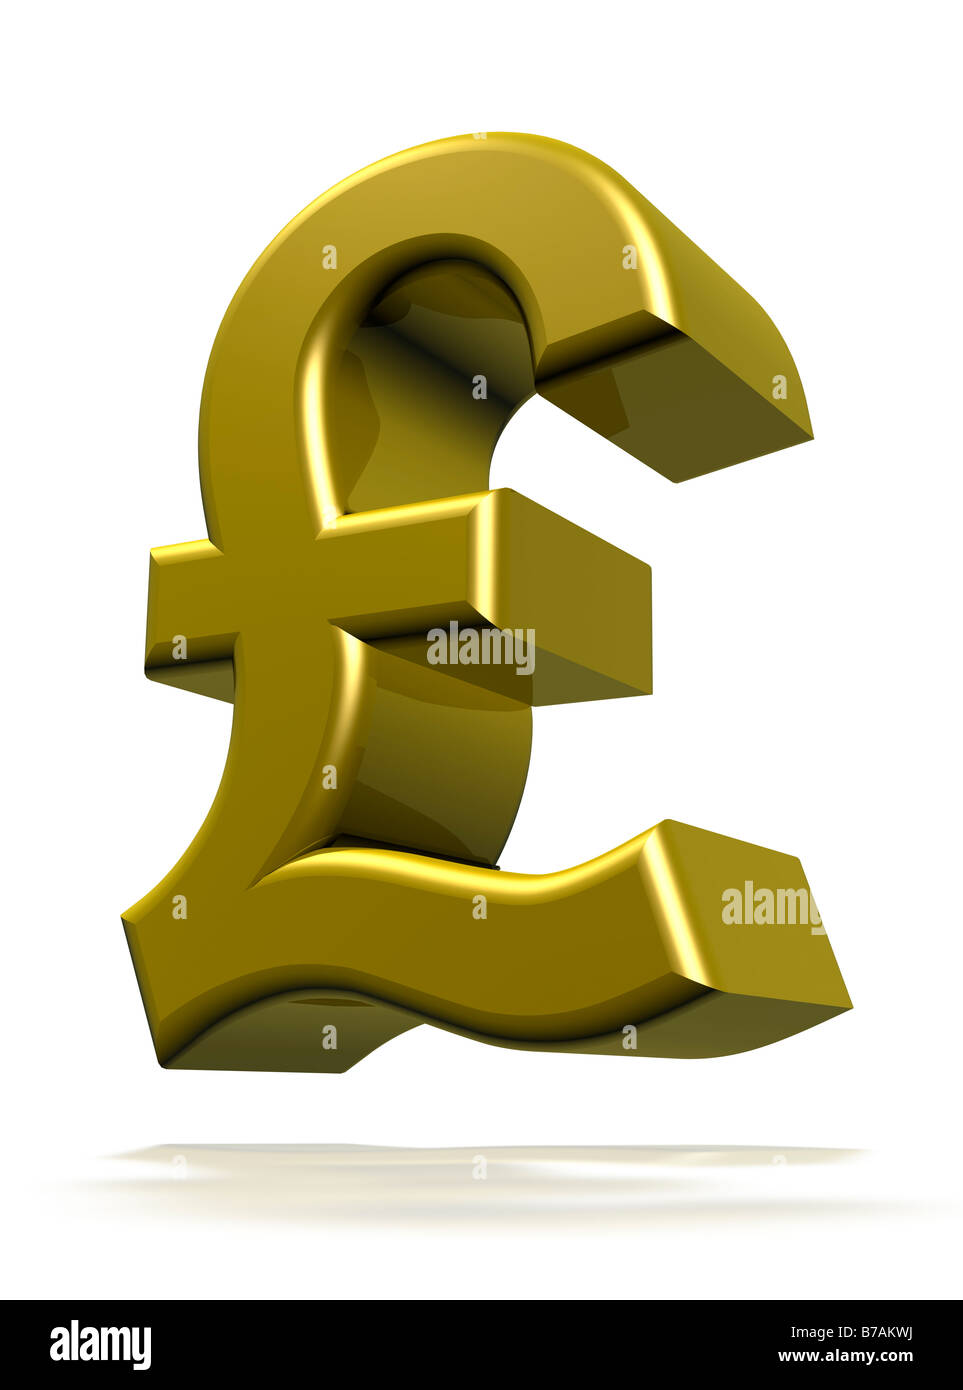 Pound sterling symbol 3d cgi render - Stock Image